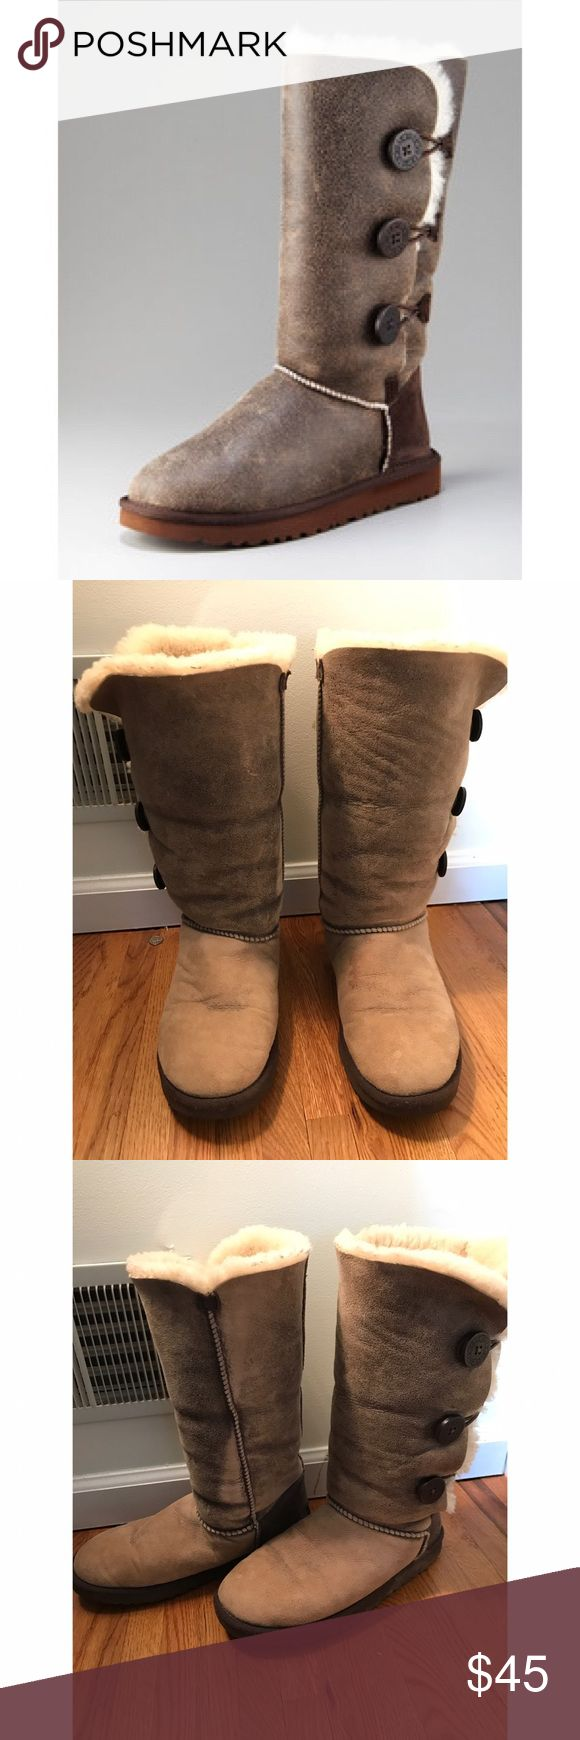 """Bailey Button Bomber Ugg Boots 17mm grade """"A"""" Twinface sheepskin. Styles in this collection are designed with an elastic closure and functional wood button that has been laser-etched with our original UGG logo. There is a small rip in the fur on the inside, but this is not noticeable when wearing them (this is why they aren't expensive). Thanks! UGG Shoes Winter & Rain Boots"""